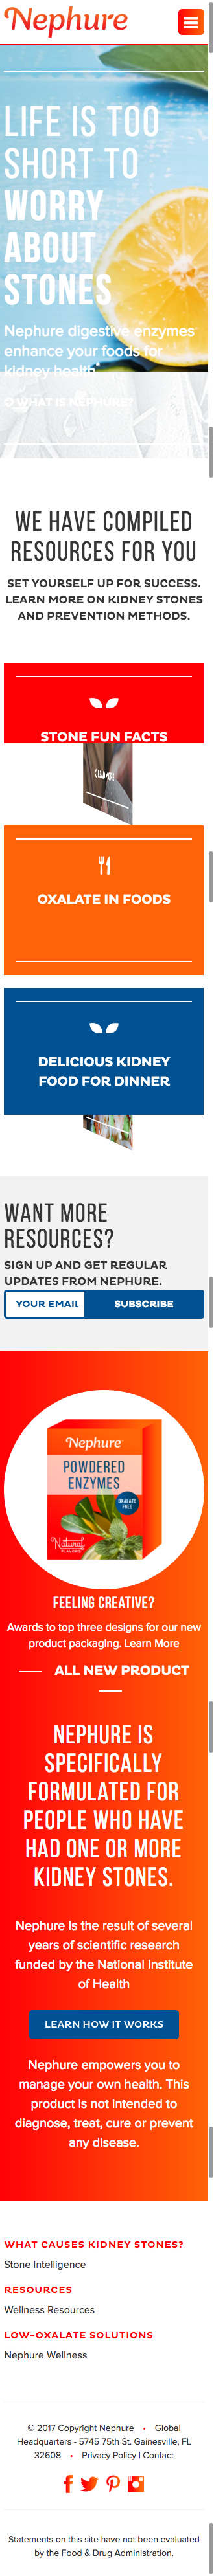 Nephure-Mobile.png